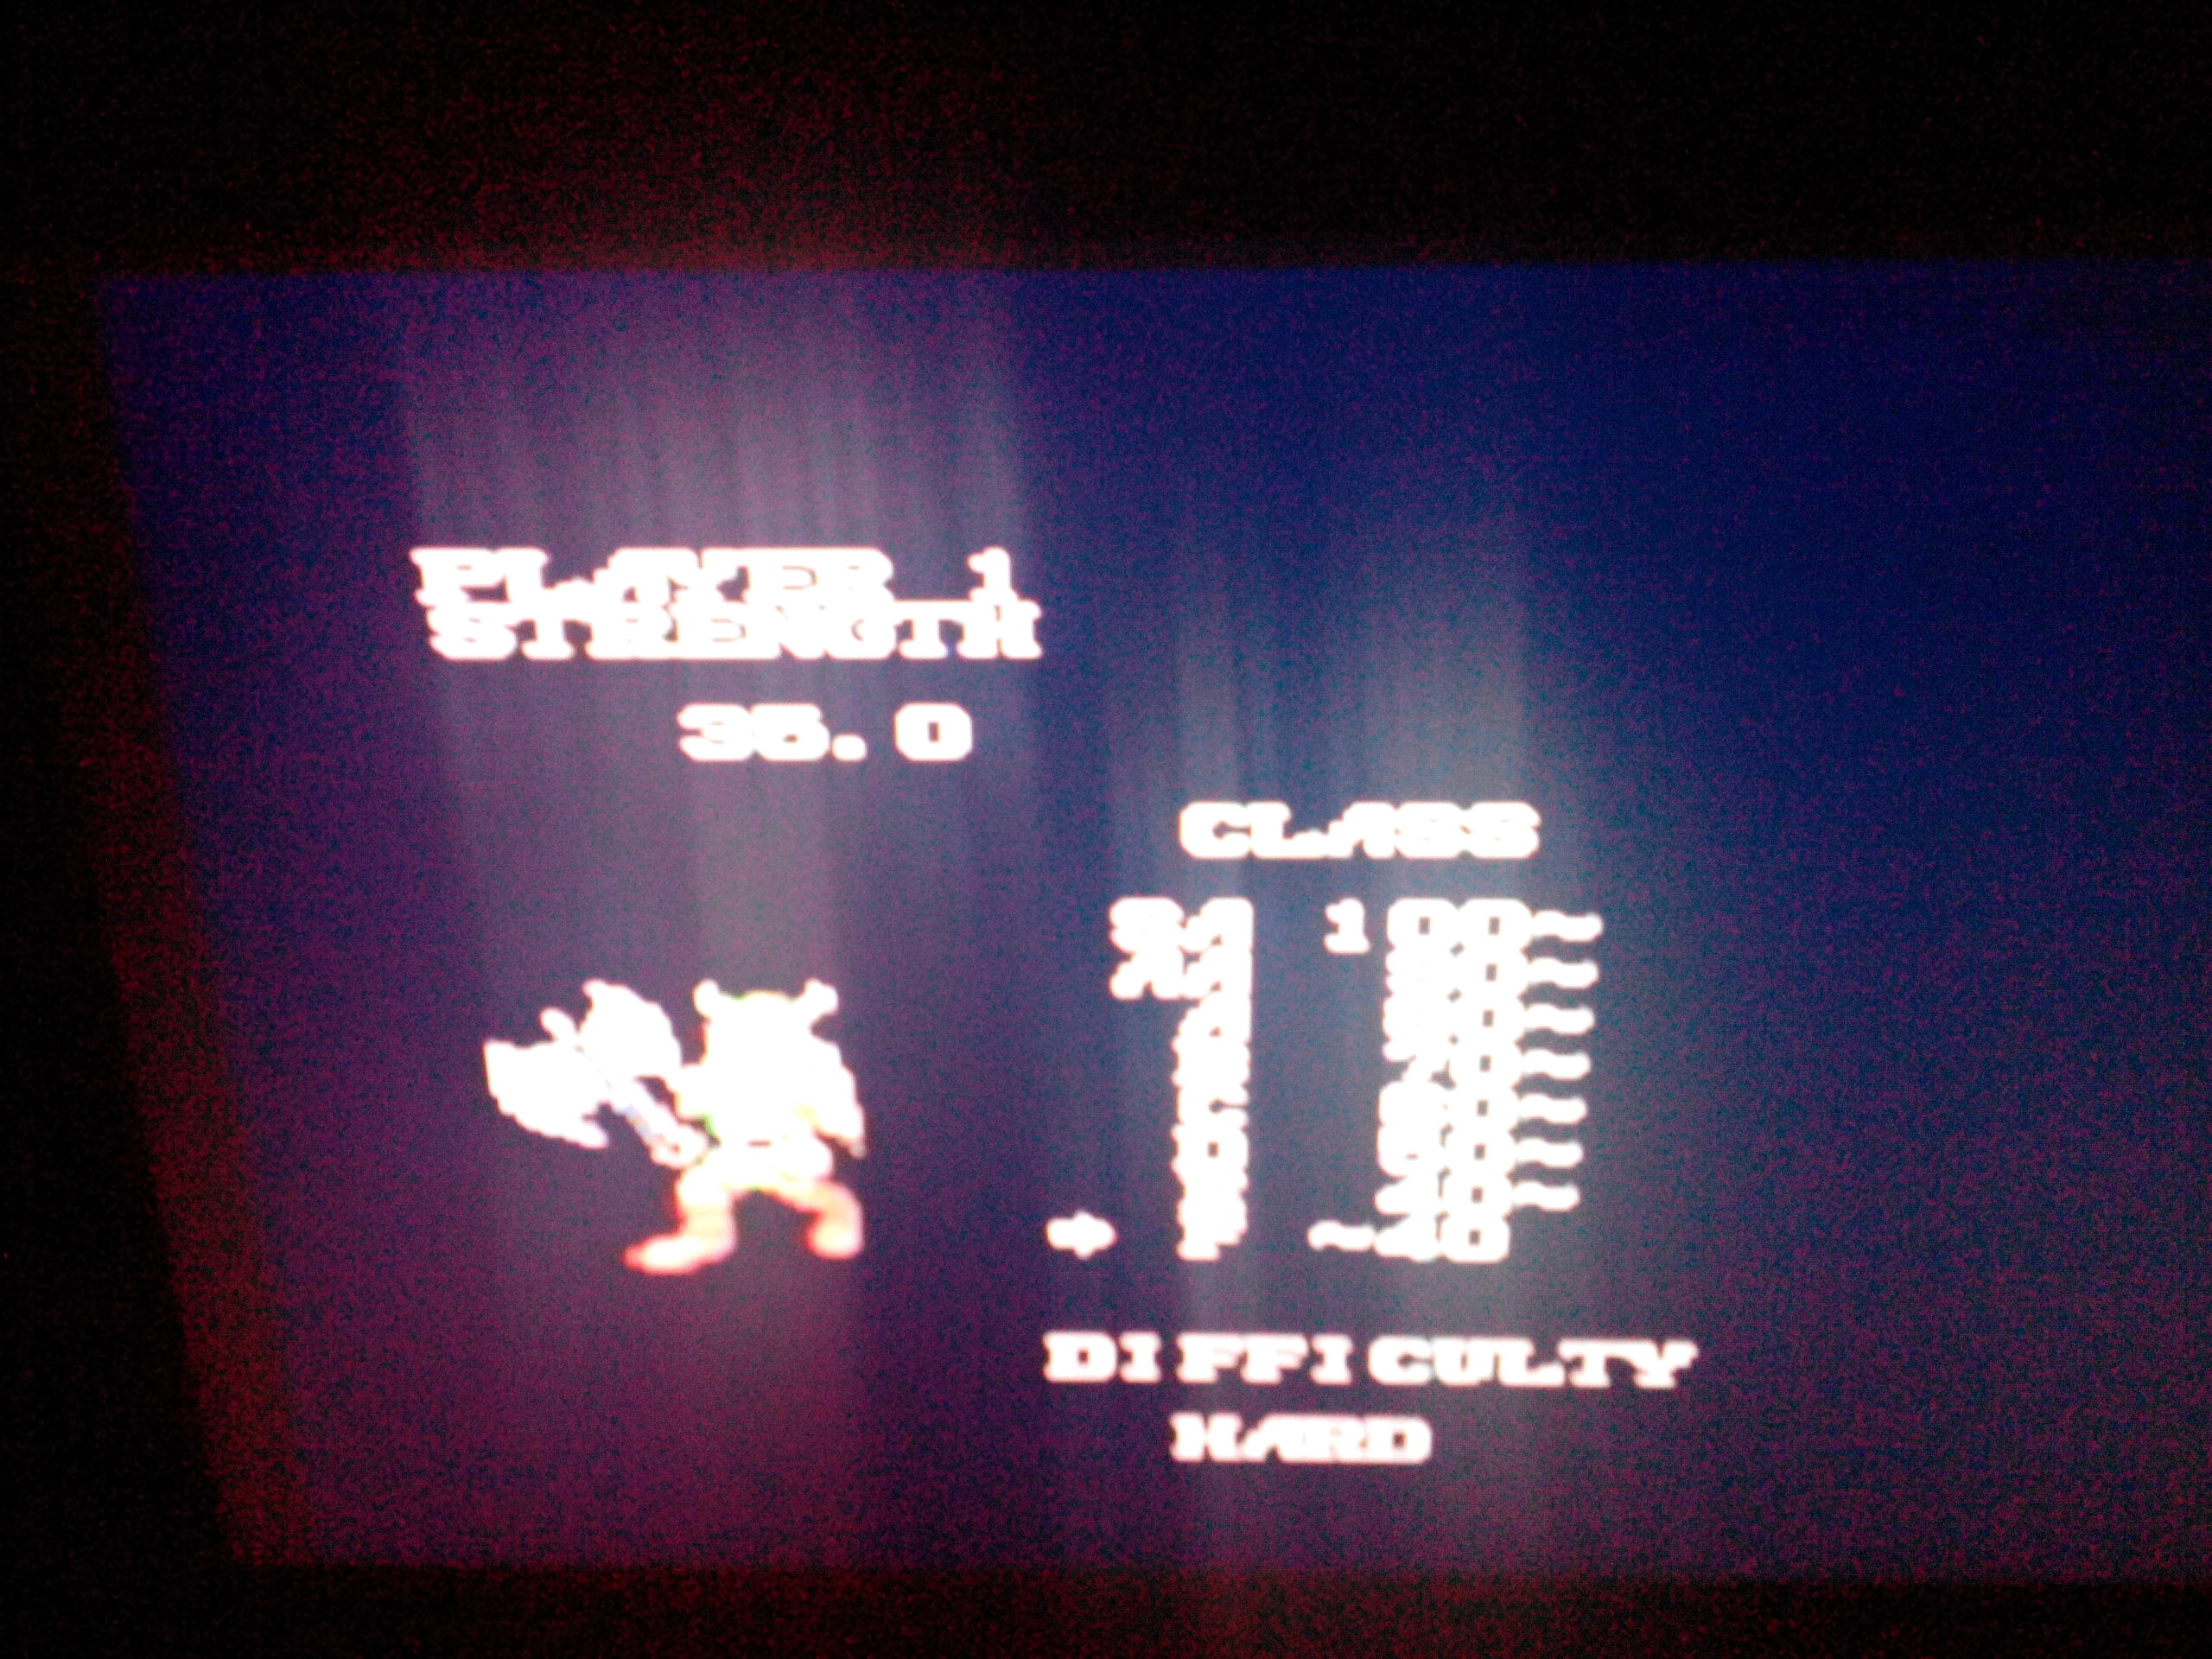 Golden axe II [Hard] 35 points